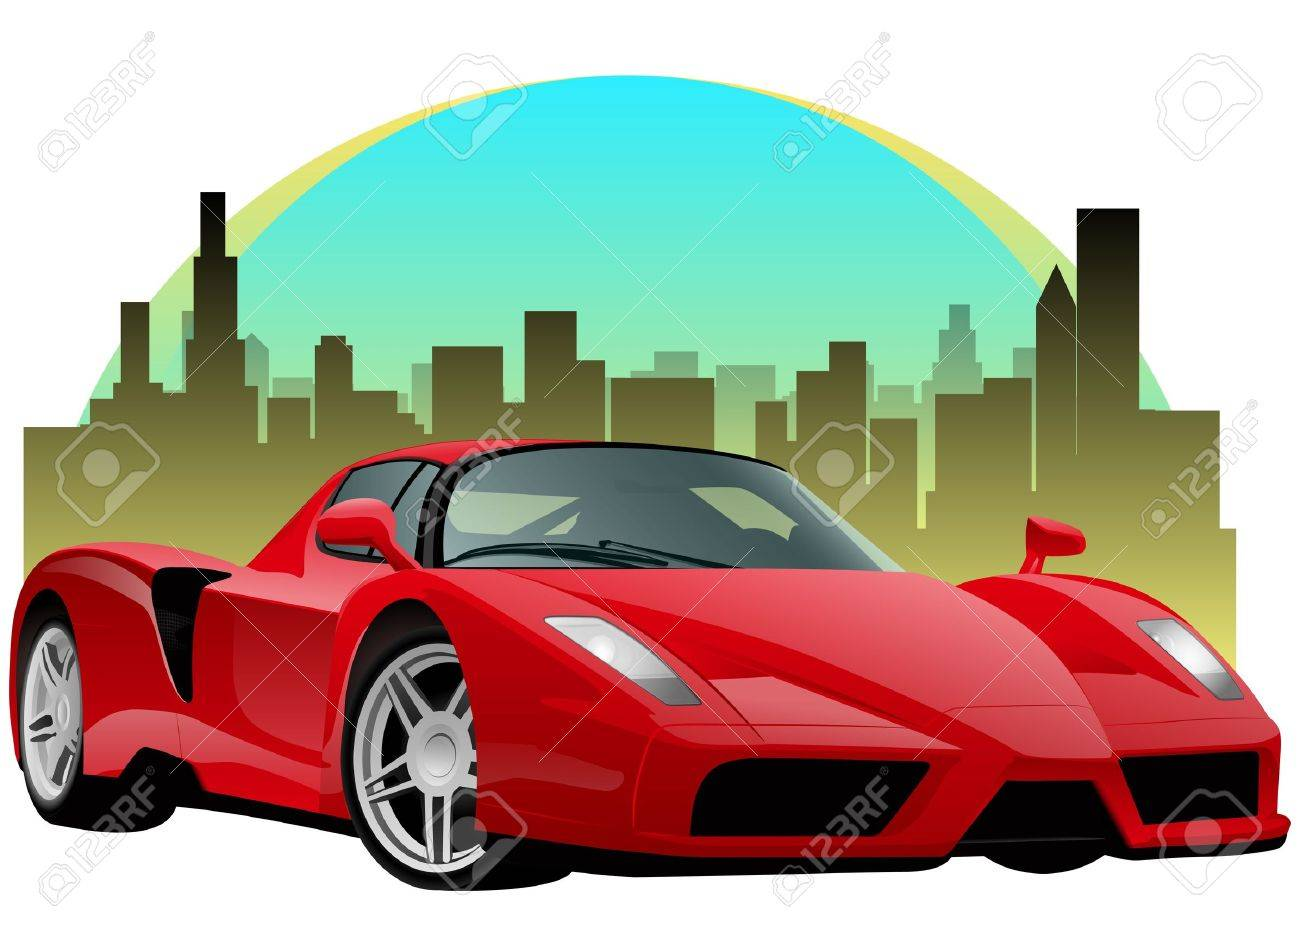 Exatic Red Sports Car Stock Vector - 14203366